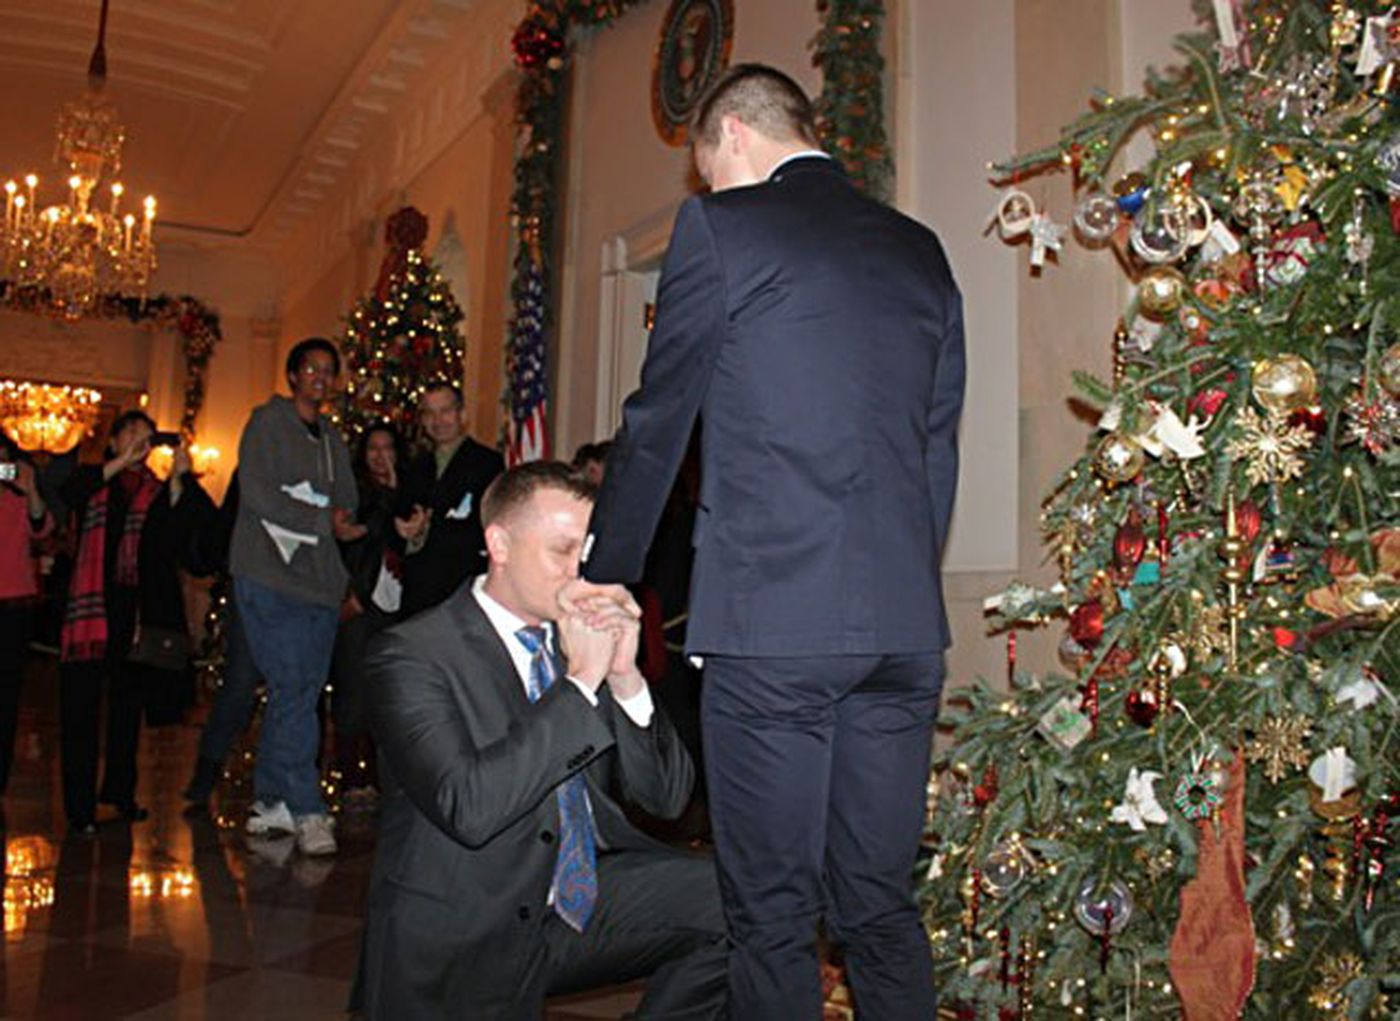 Marine Captain Matthew Phelps marriage proposal in the white house